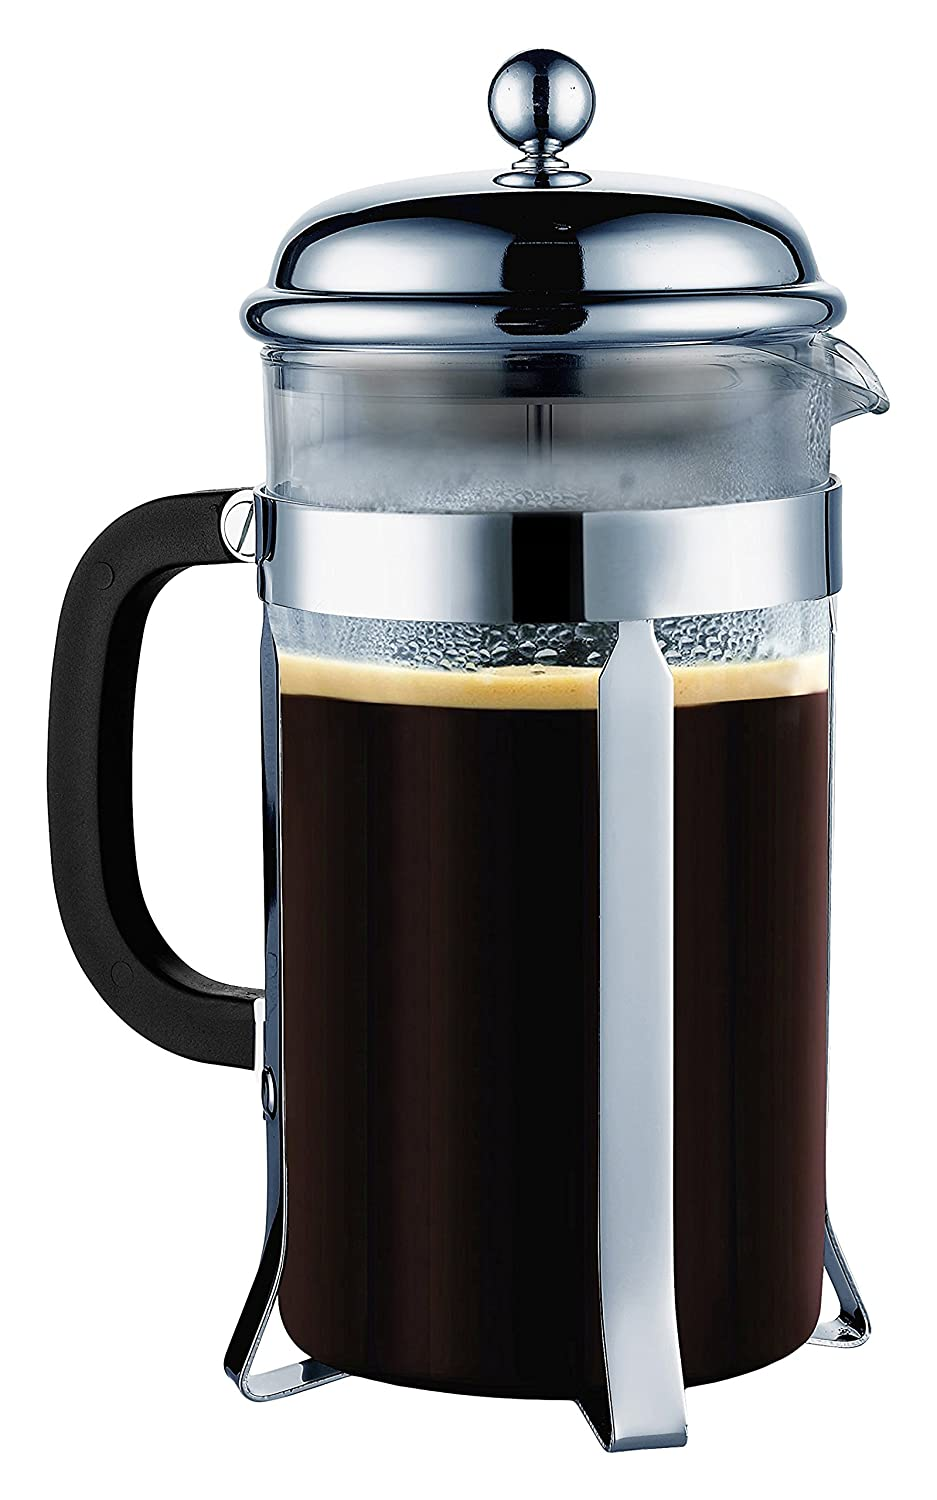 SterlingPro French Press 8 Cup